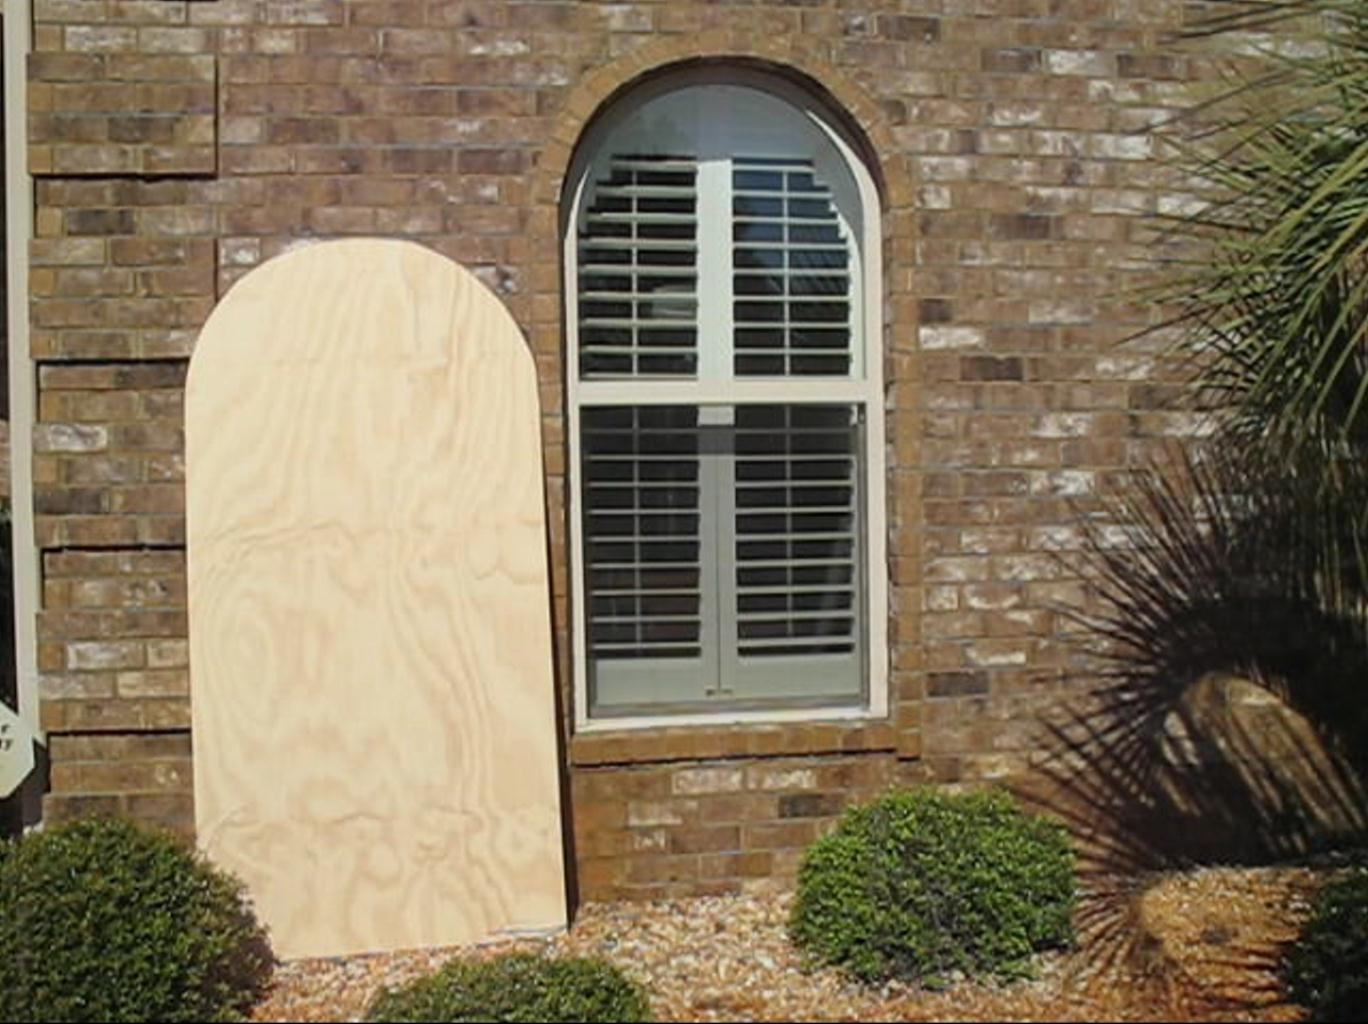 How To Make Your Own Hurricane Shutters